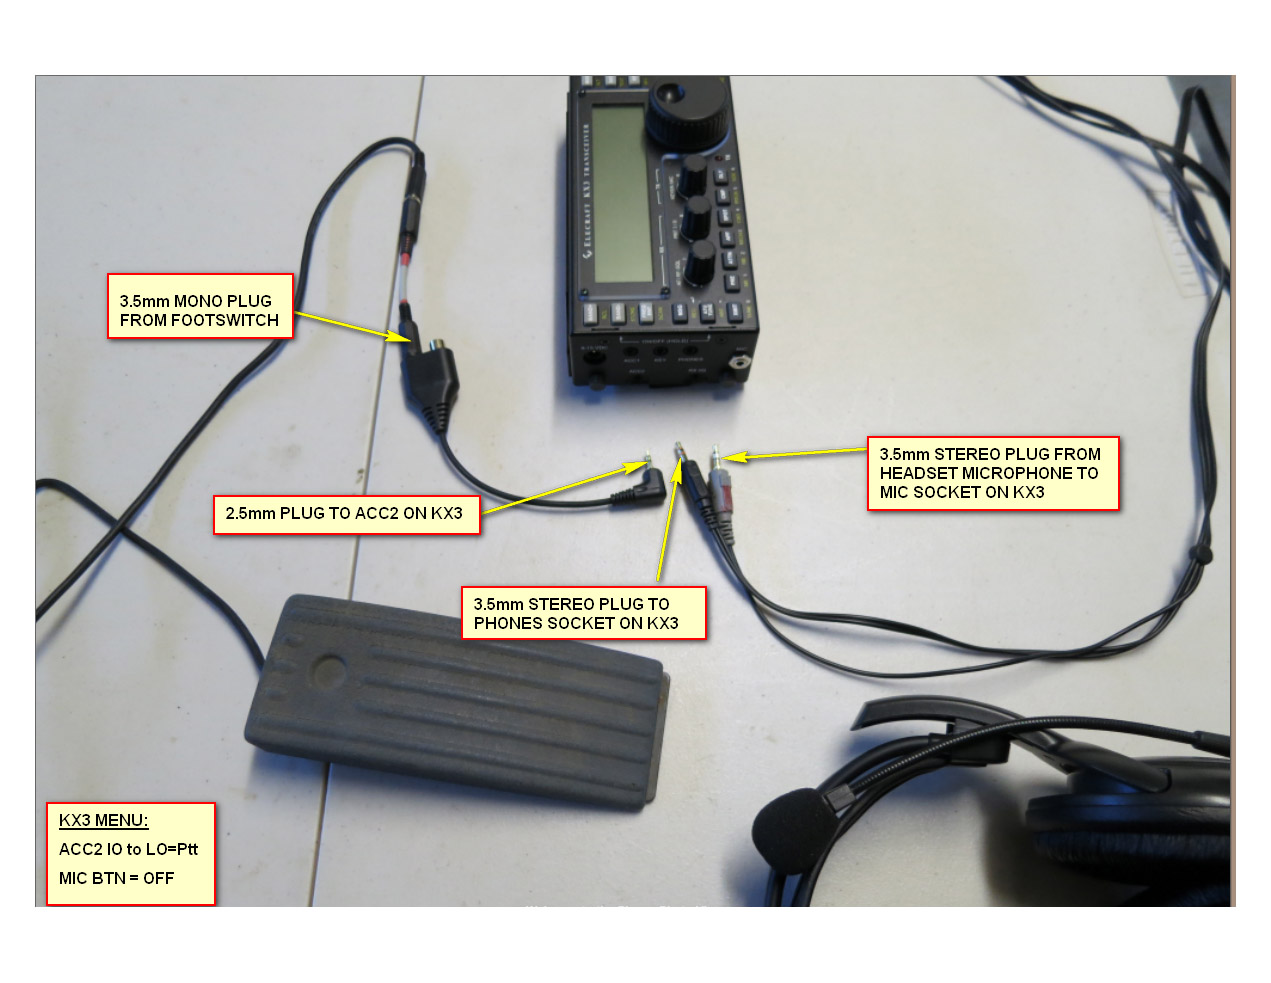 medium resolution of wiring a footswitch for use with a computer type headset on the kx3